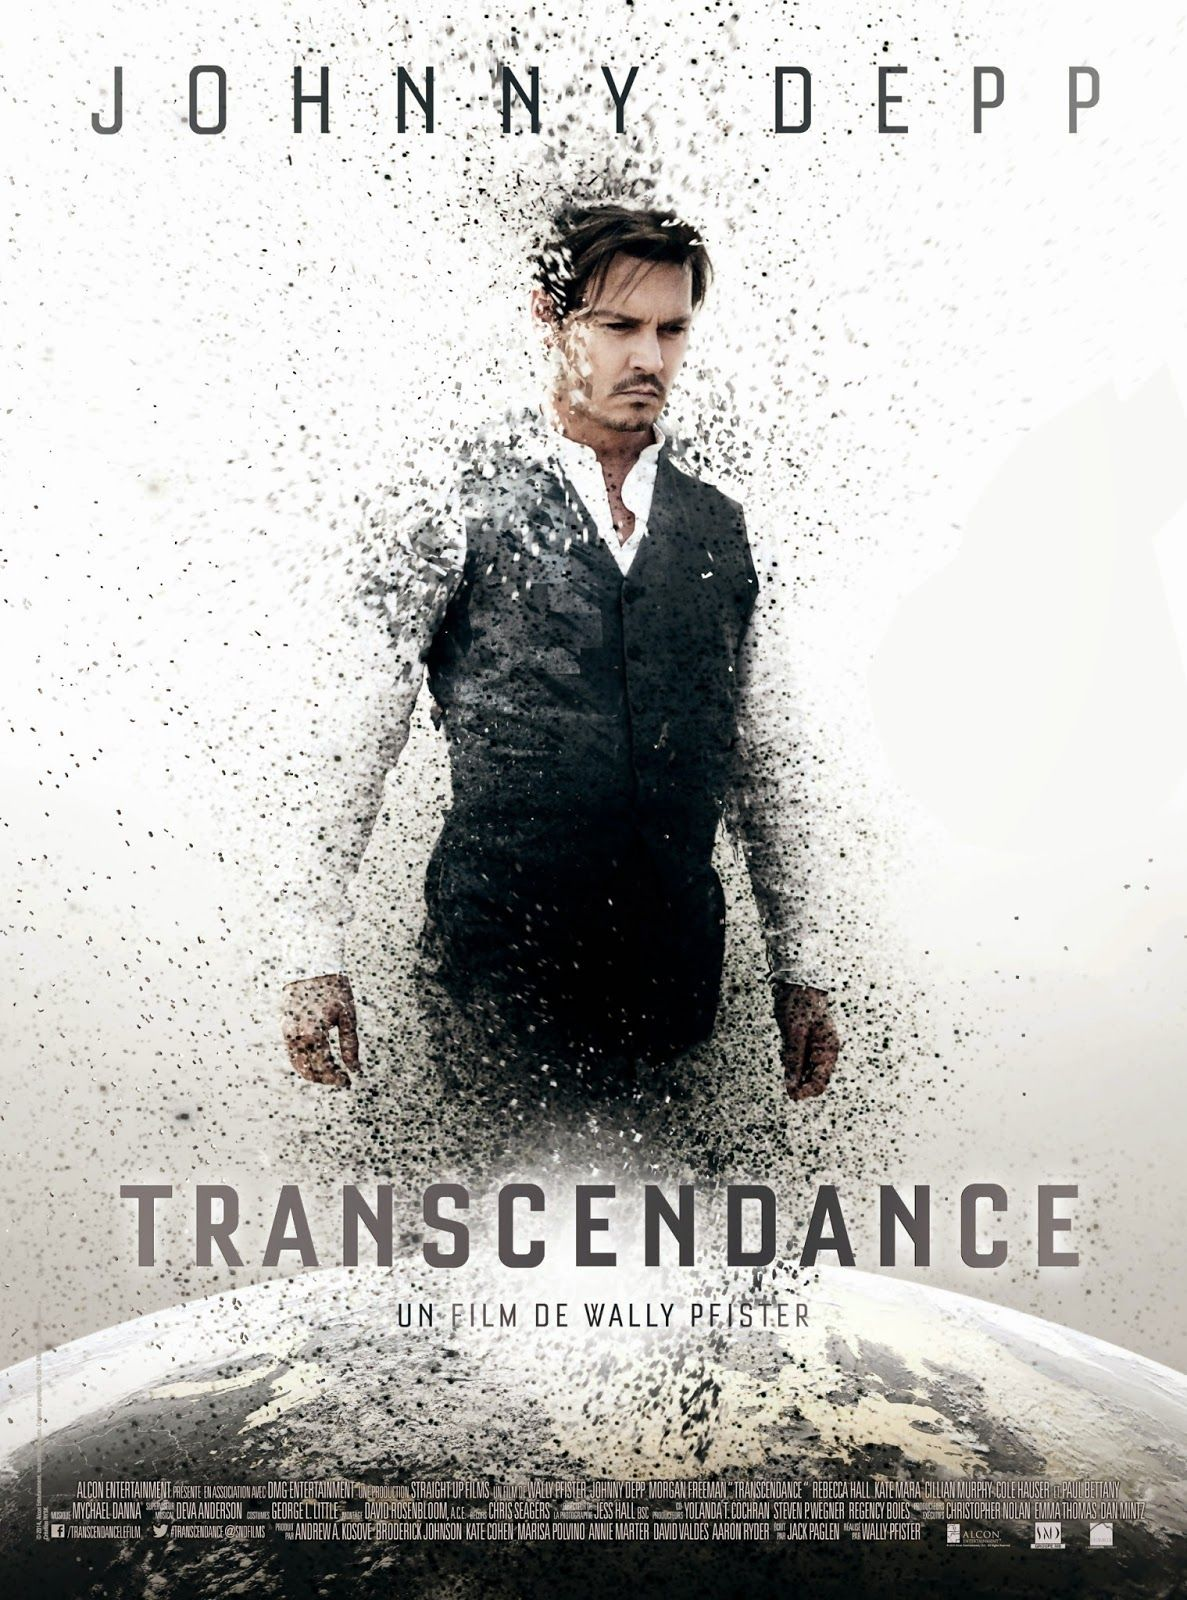 Transcendence 2014 1080p Official Movie Trailer New Movie Posters Film 2014 Johnny Depp